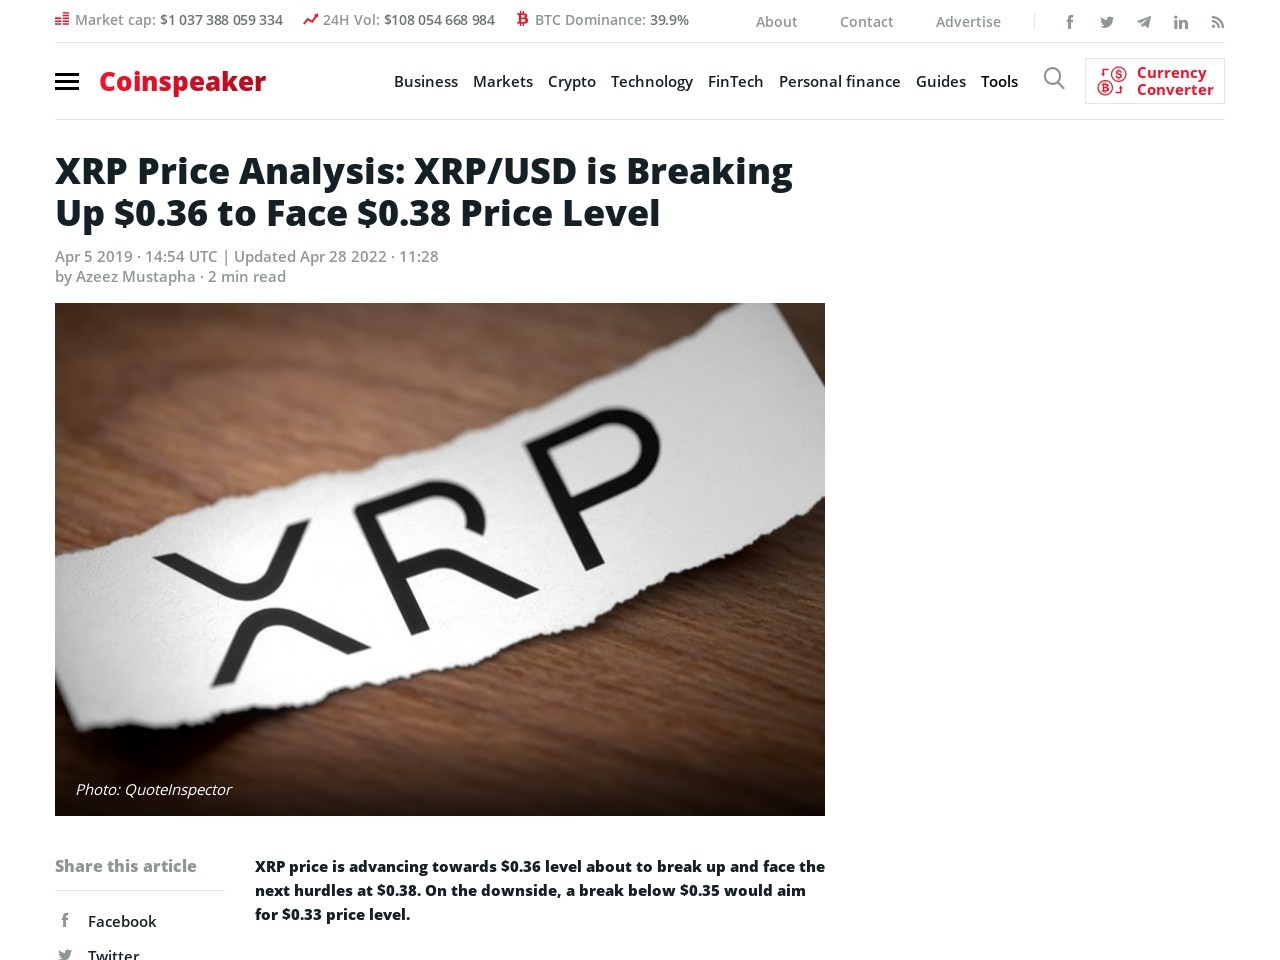 XRP Price Analysis: XRP/USD is Breaking Up $0.36 to Face $0.38 Price Level